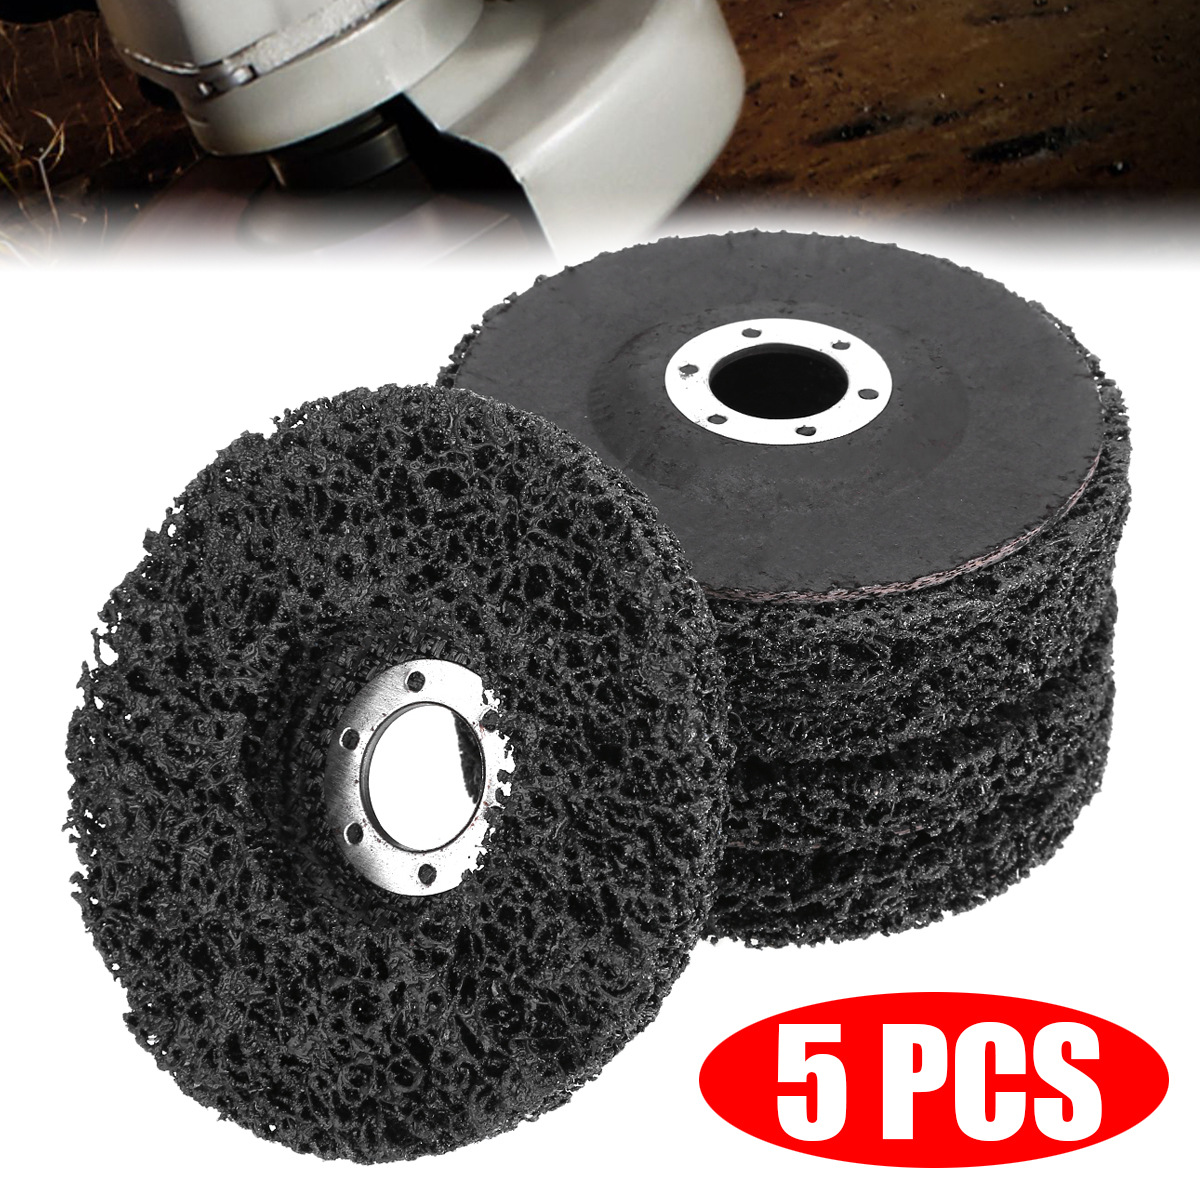 5Pcs 40Grit Poly Strip Grinder Wheel Disc Metal Surface Polishing Wheel Paint Rust Removal Clean Abrasive Wheel Tool 115*22mm